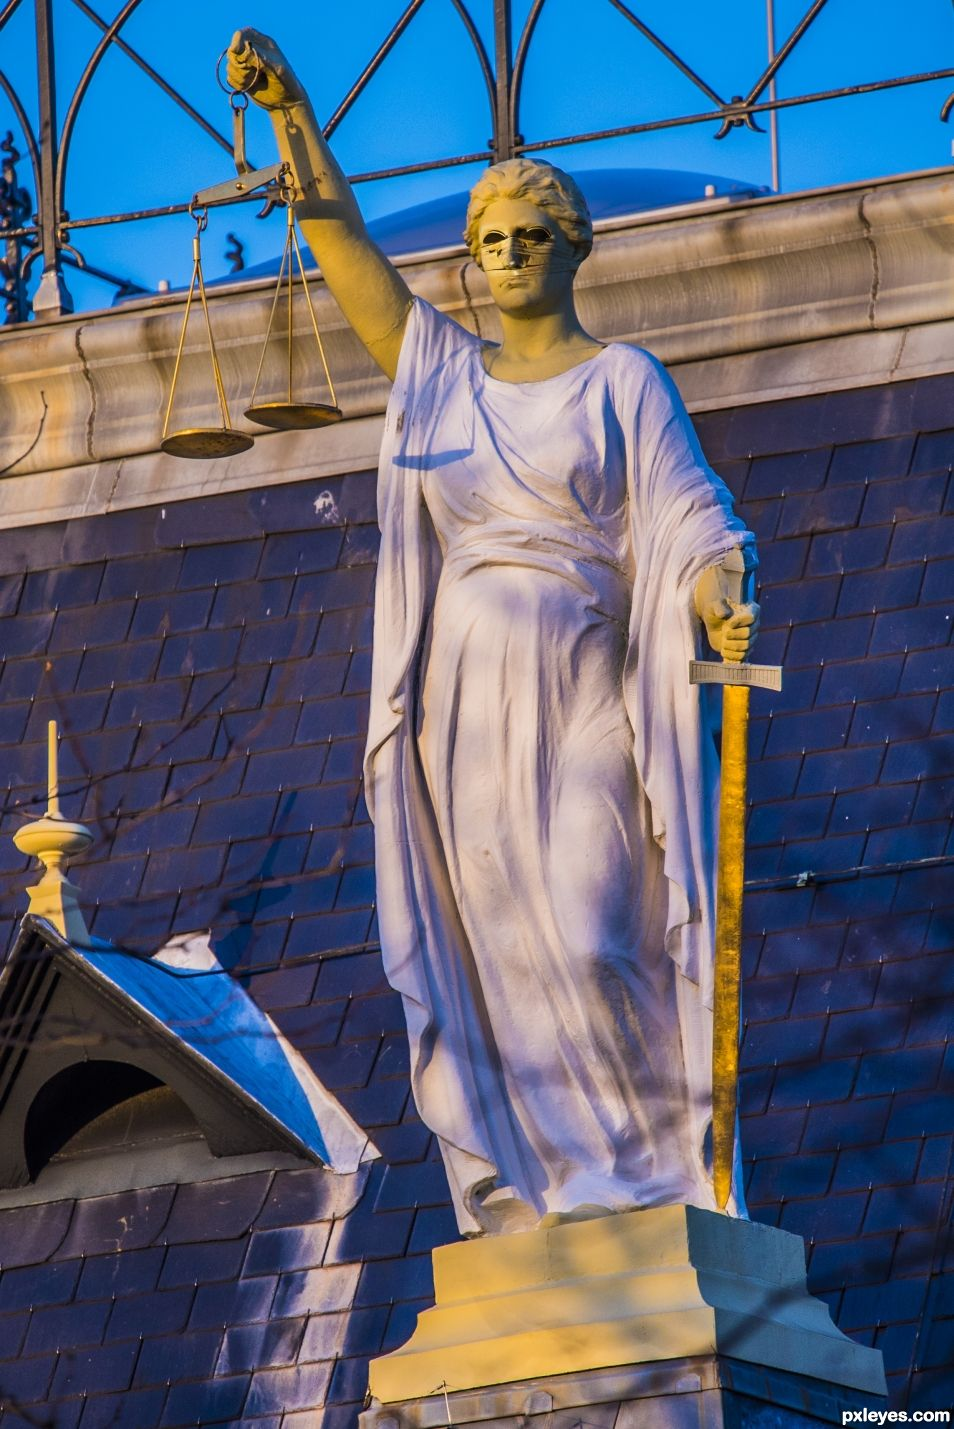 Lady justice blindfolded no more